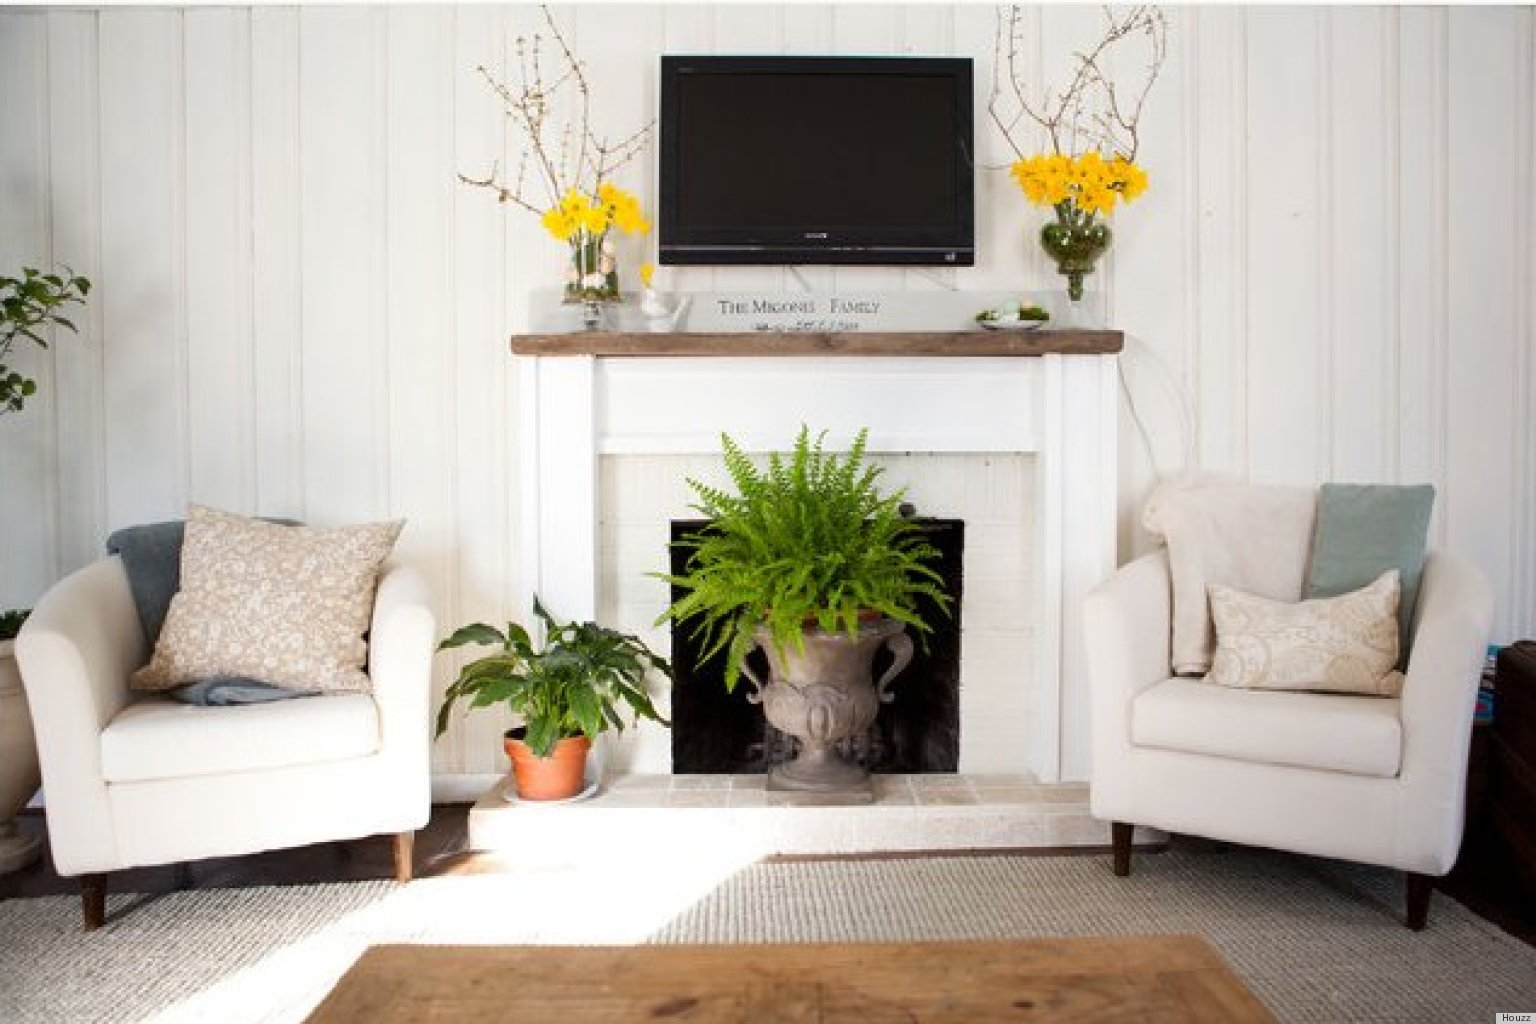 Fireplace Decorations Glamorous 10 Ways To Decorate Your Fireplace In The Summer Since You Won't Review